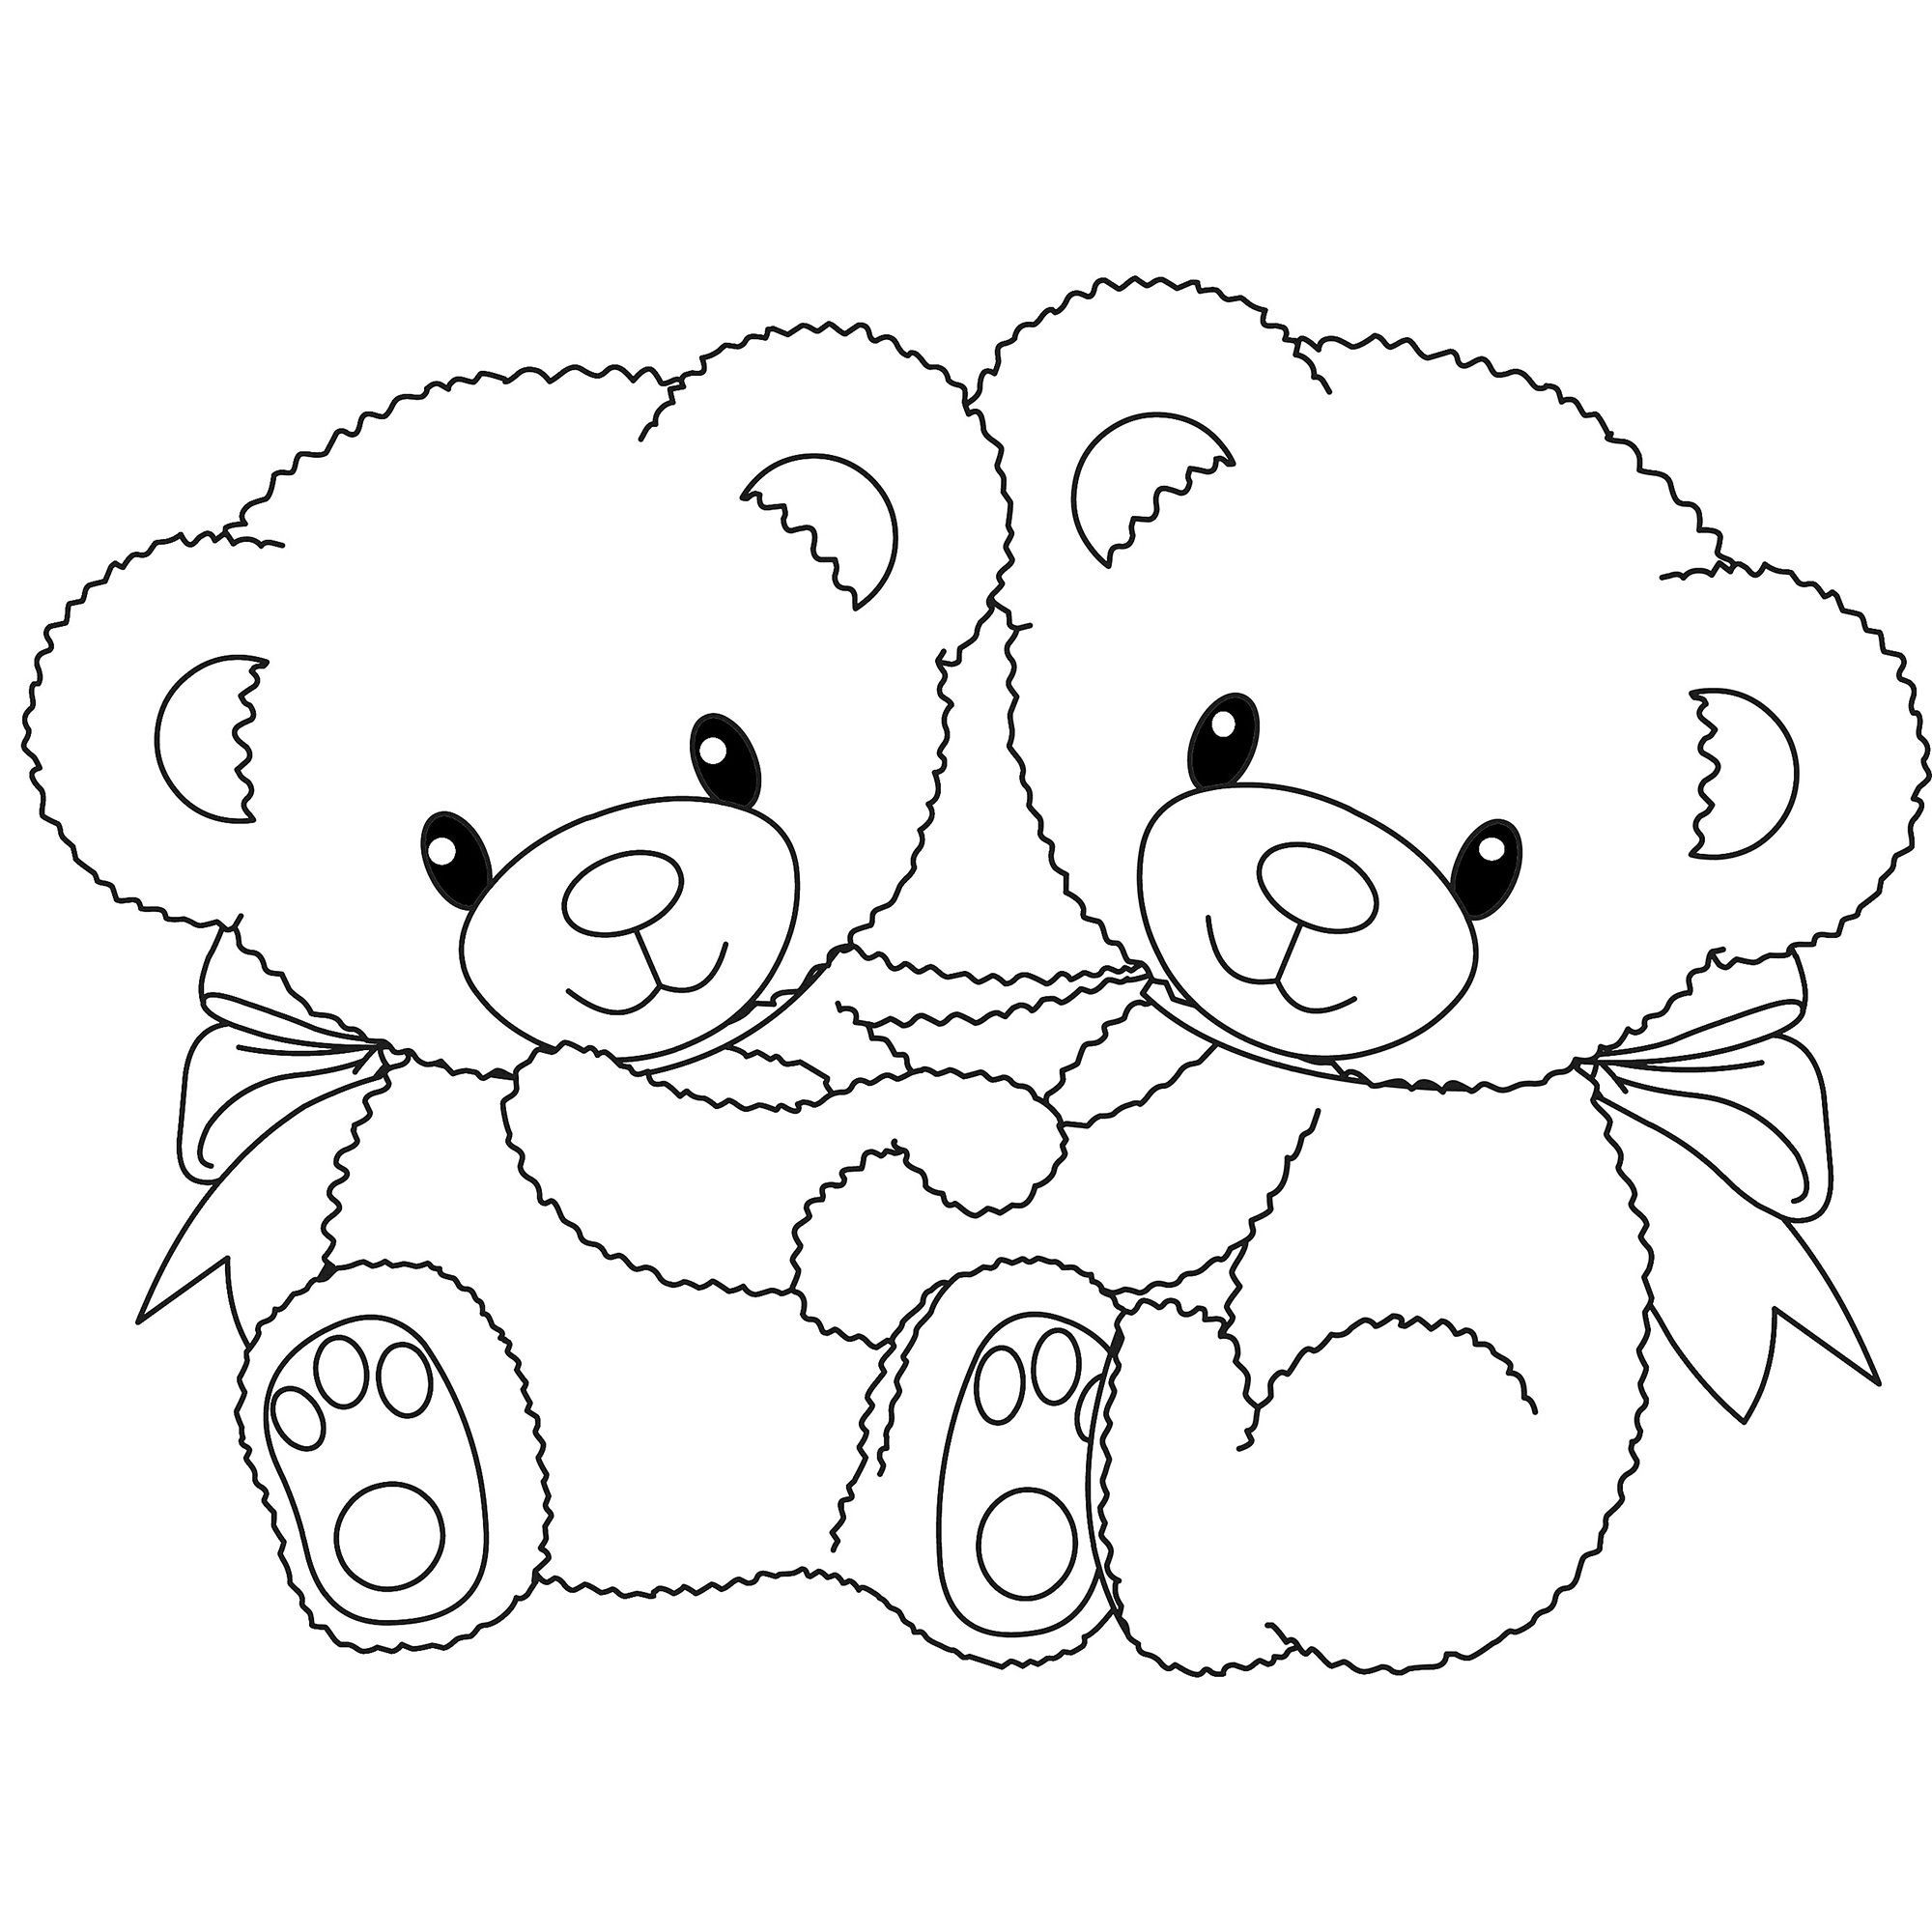 Cute Bear Coloring Pages Ideas Teddy Bear Coloring Pages Panda